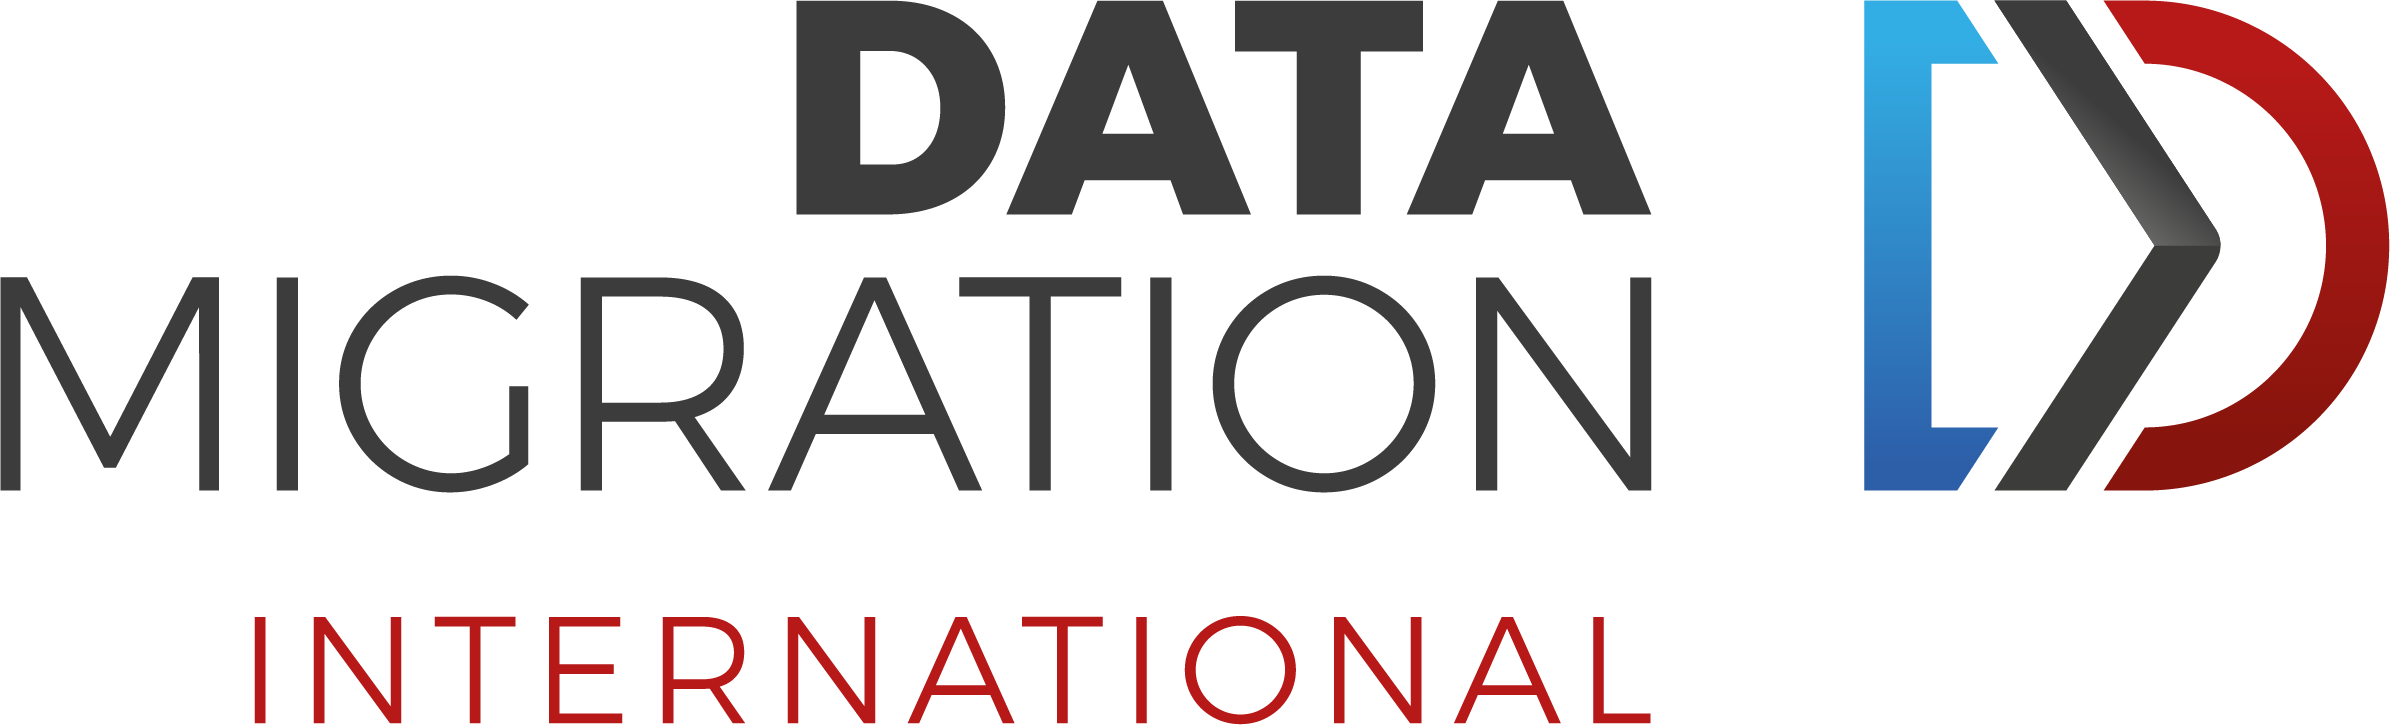 datamigration logo